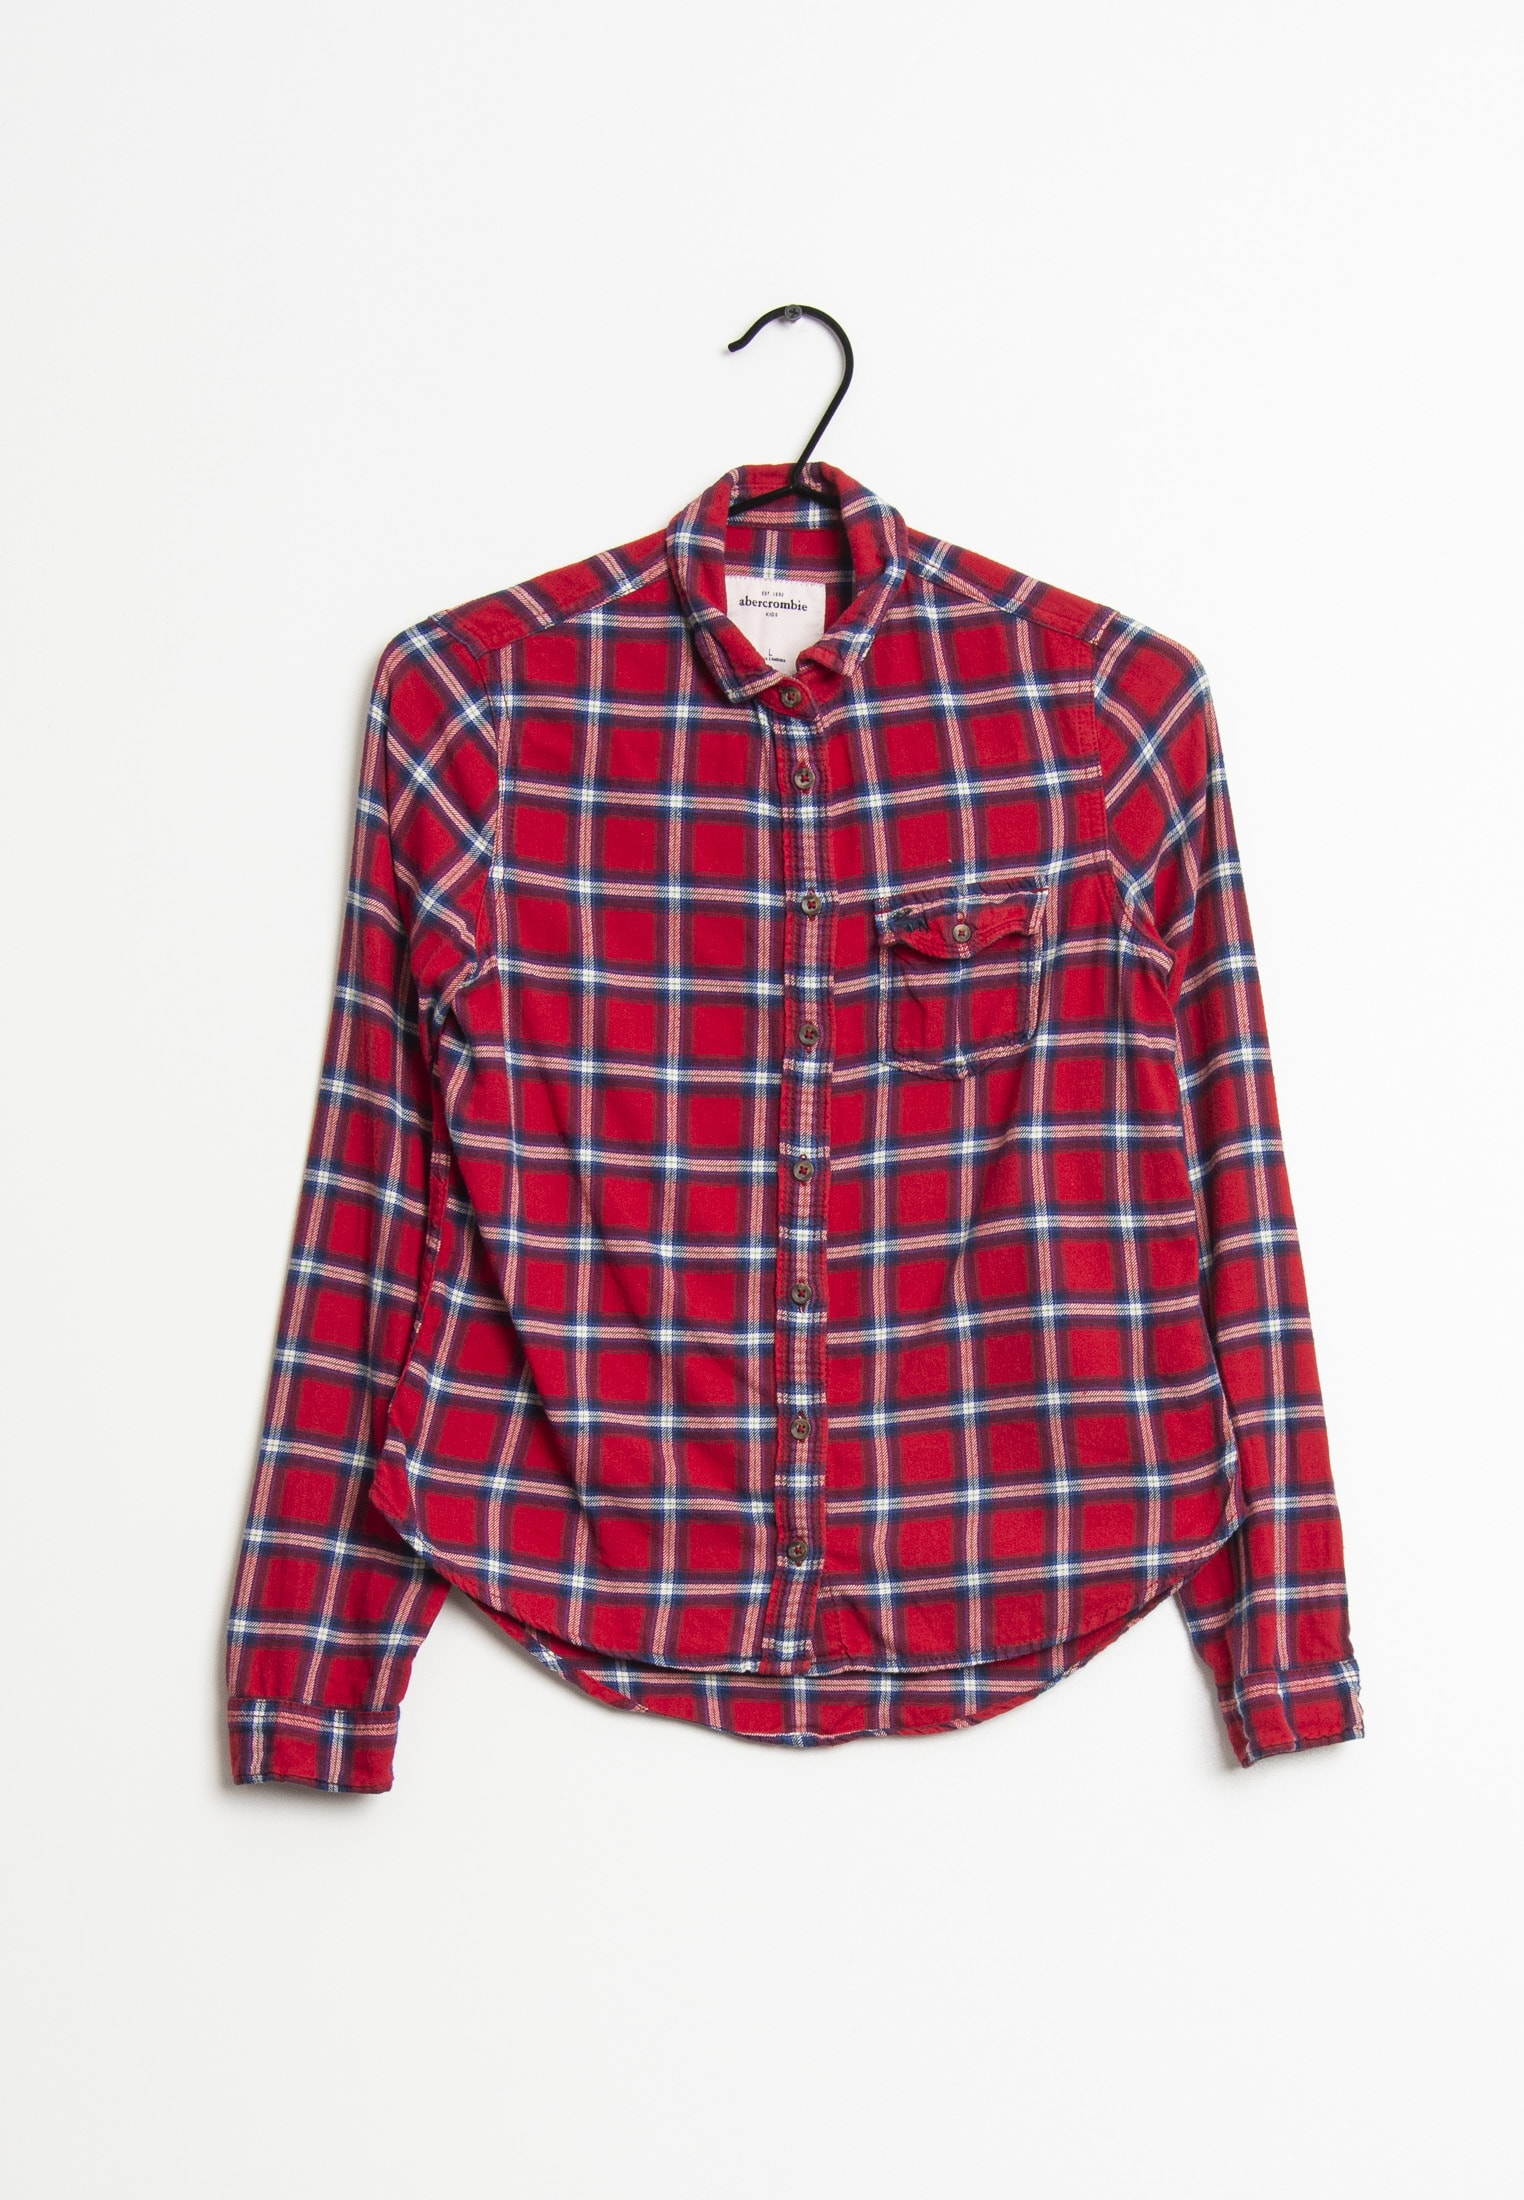 Abercrombie & Fitch Bluse Rot Gr.L